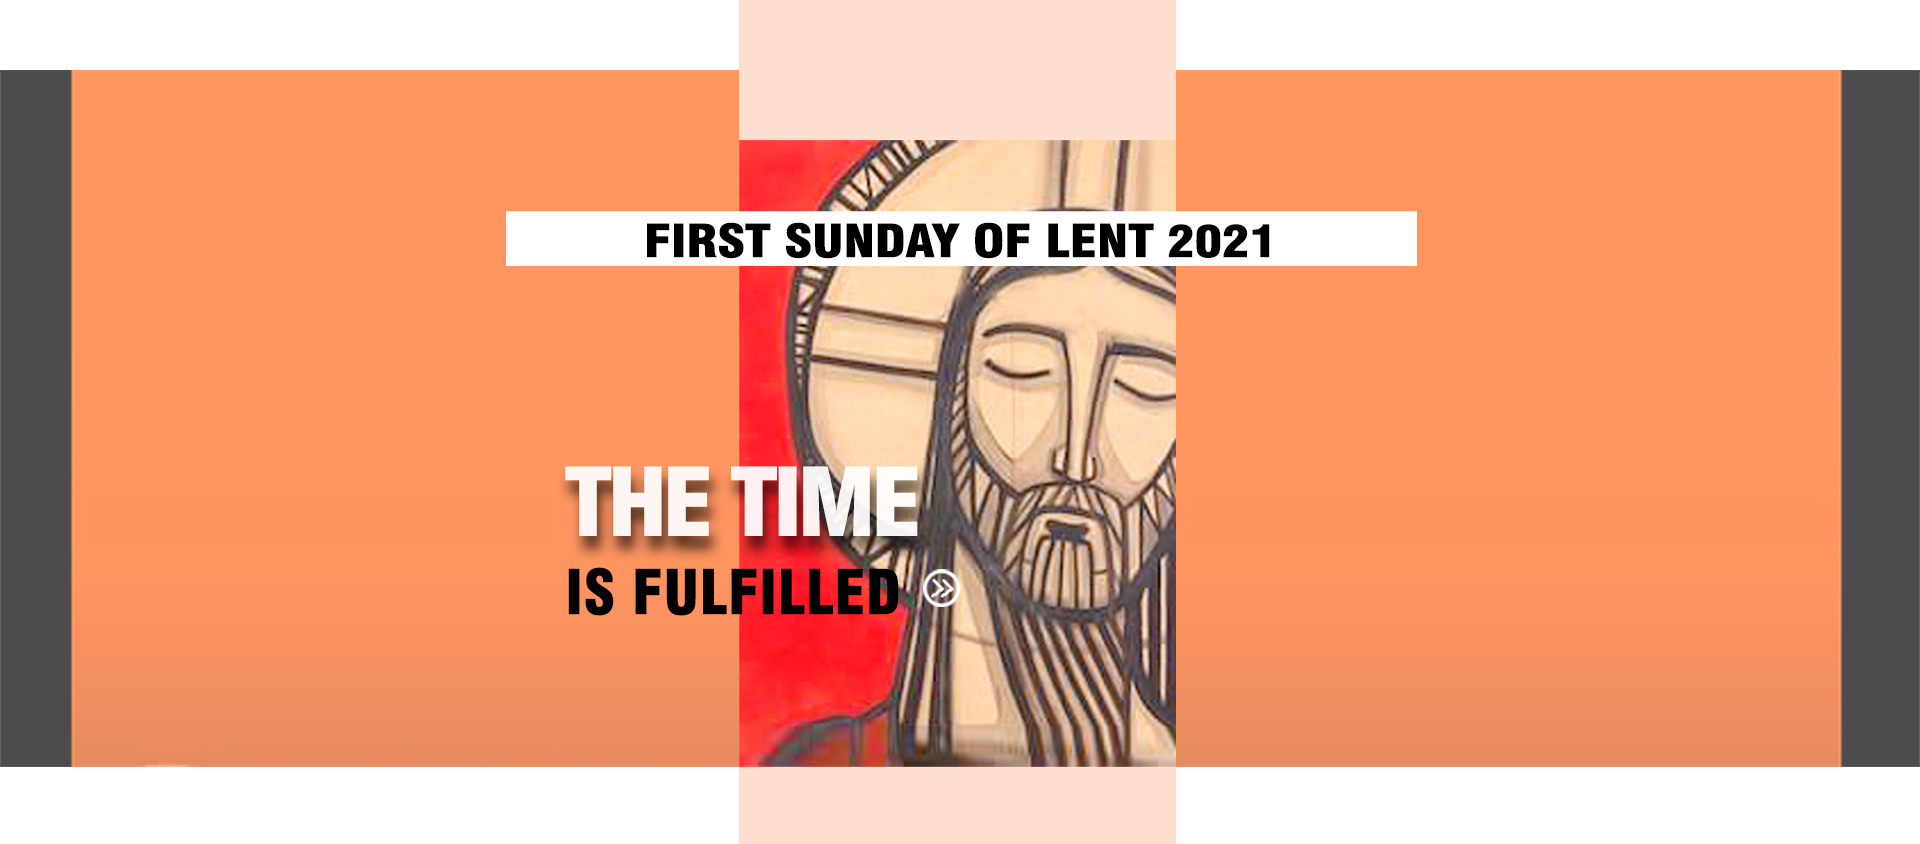 First Sunday of Lent 2021